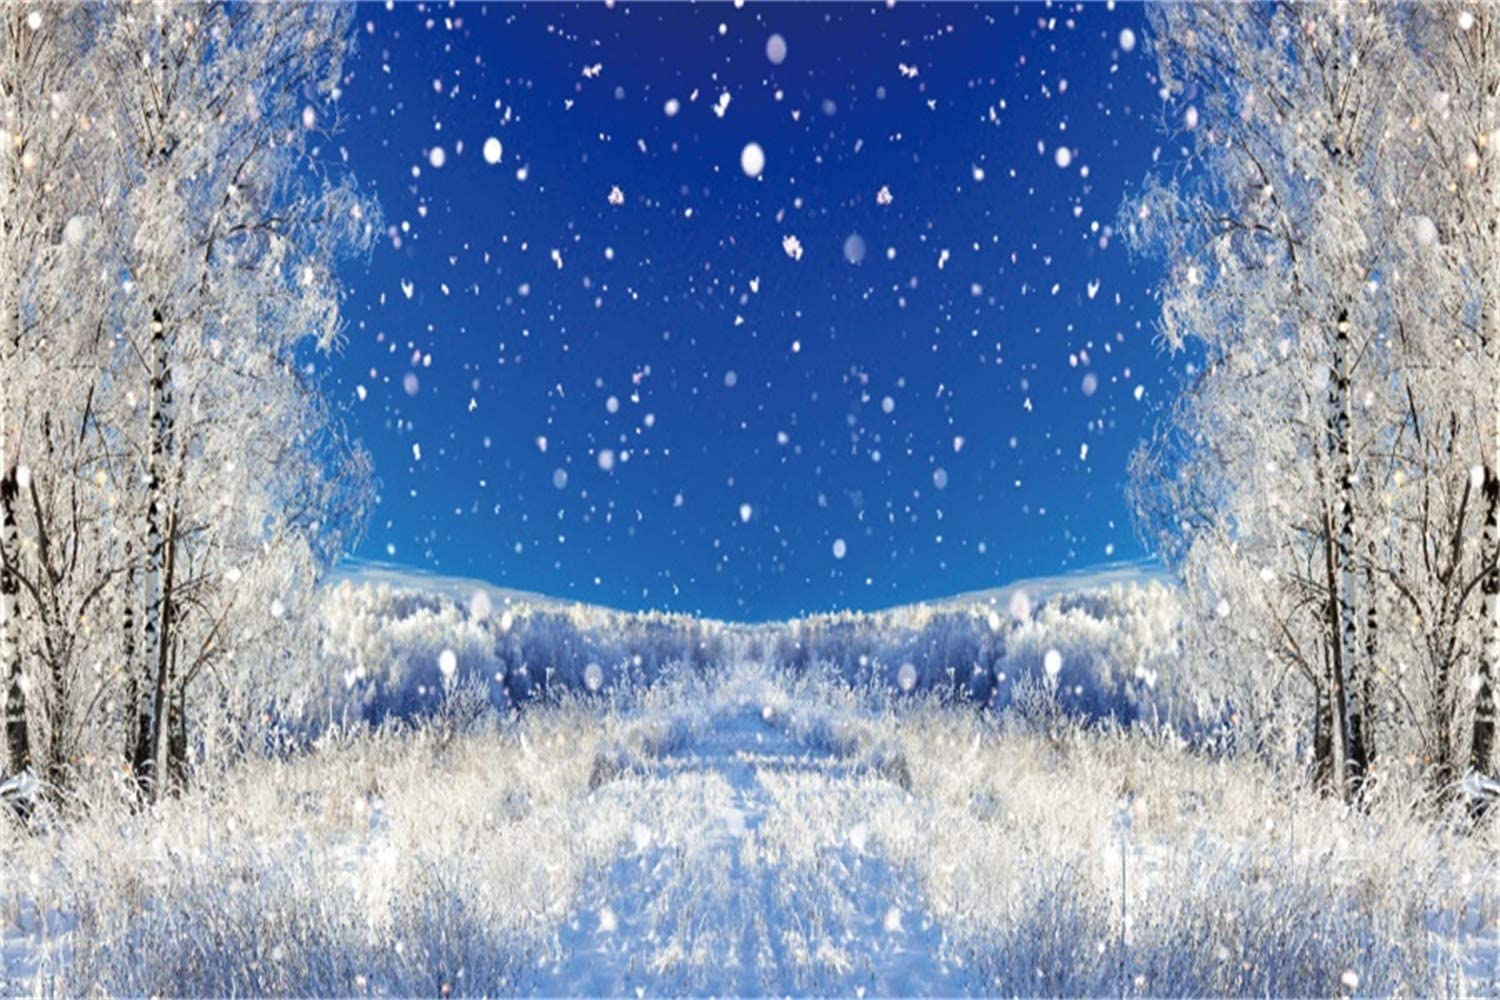 Winter Snowscape Backdrop 10x6.5ft Polyester Frosty Pine Trees Forest Remote Snowy Mountains Undefiled Snowfield Photography Background Winter Scenic Kids Baby Shoot Indoor Decors Wallpaper